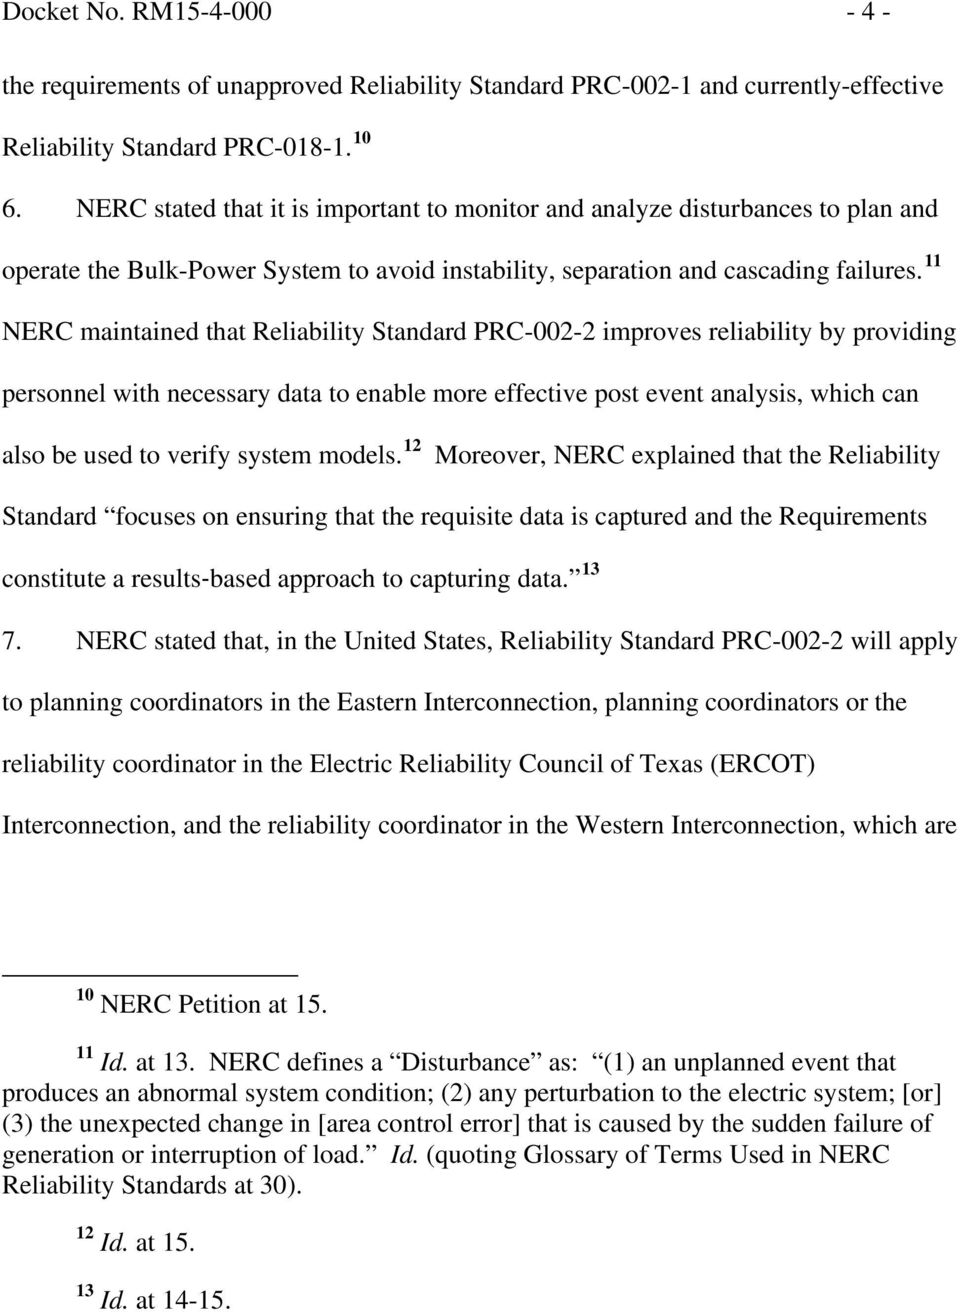 11 NERC maintained that Reliability Standard PRC-002-2 improves reliability by providing personnel with necessary data to enable more effective post event analysis, which can also be used to verify